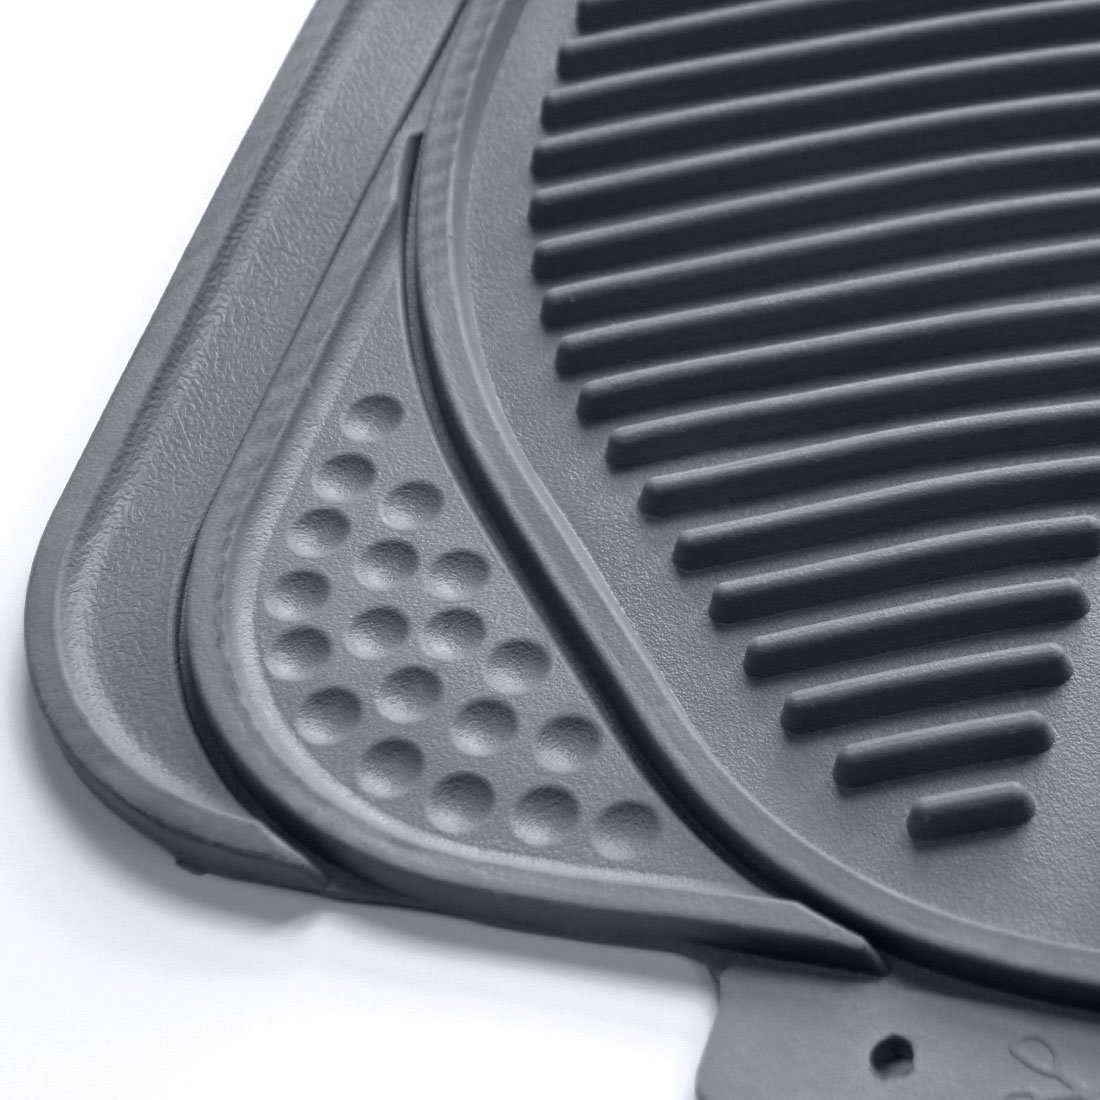 GGBAILEY D3865A-S1A-BLK/_BR Custom Fit Car Mats for 2008 2009 Saturn Astra 5 Door Black with Red Edging Driver Passenger /& Rear Floor